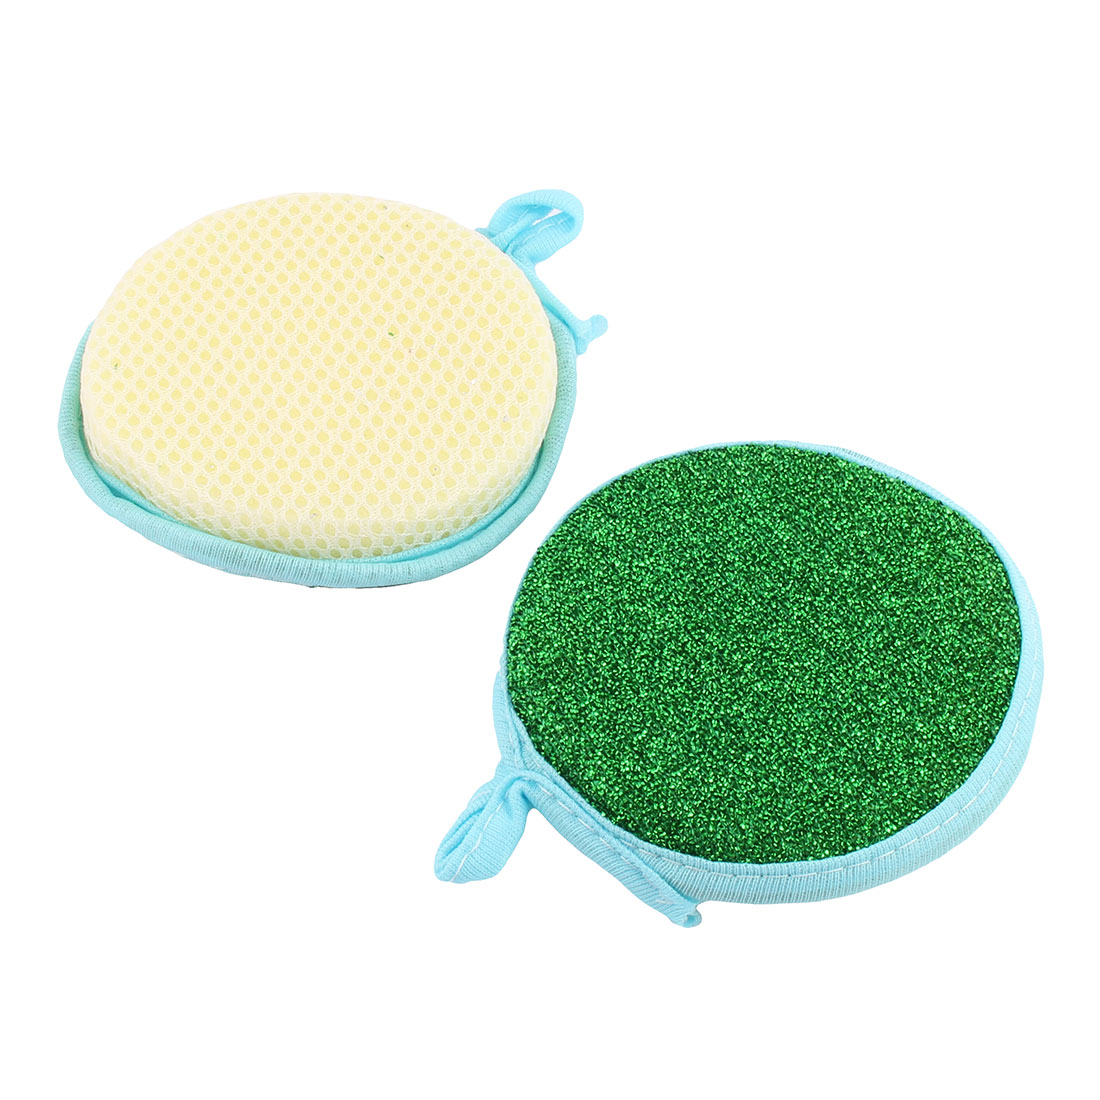 Household Kitchen Round Shape Dish Cloth Cleaning Tool Scrubber Green 2 Pcs